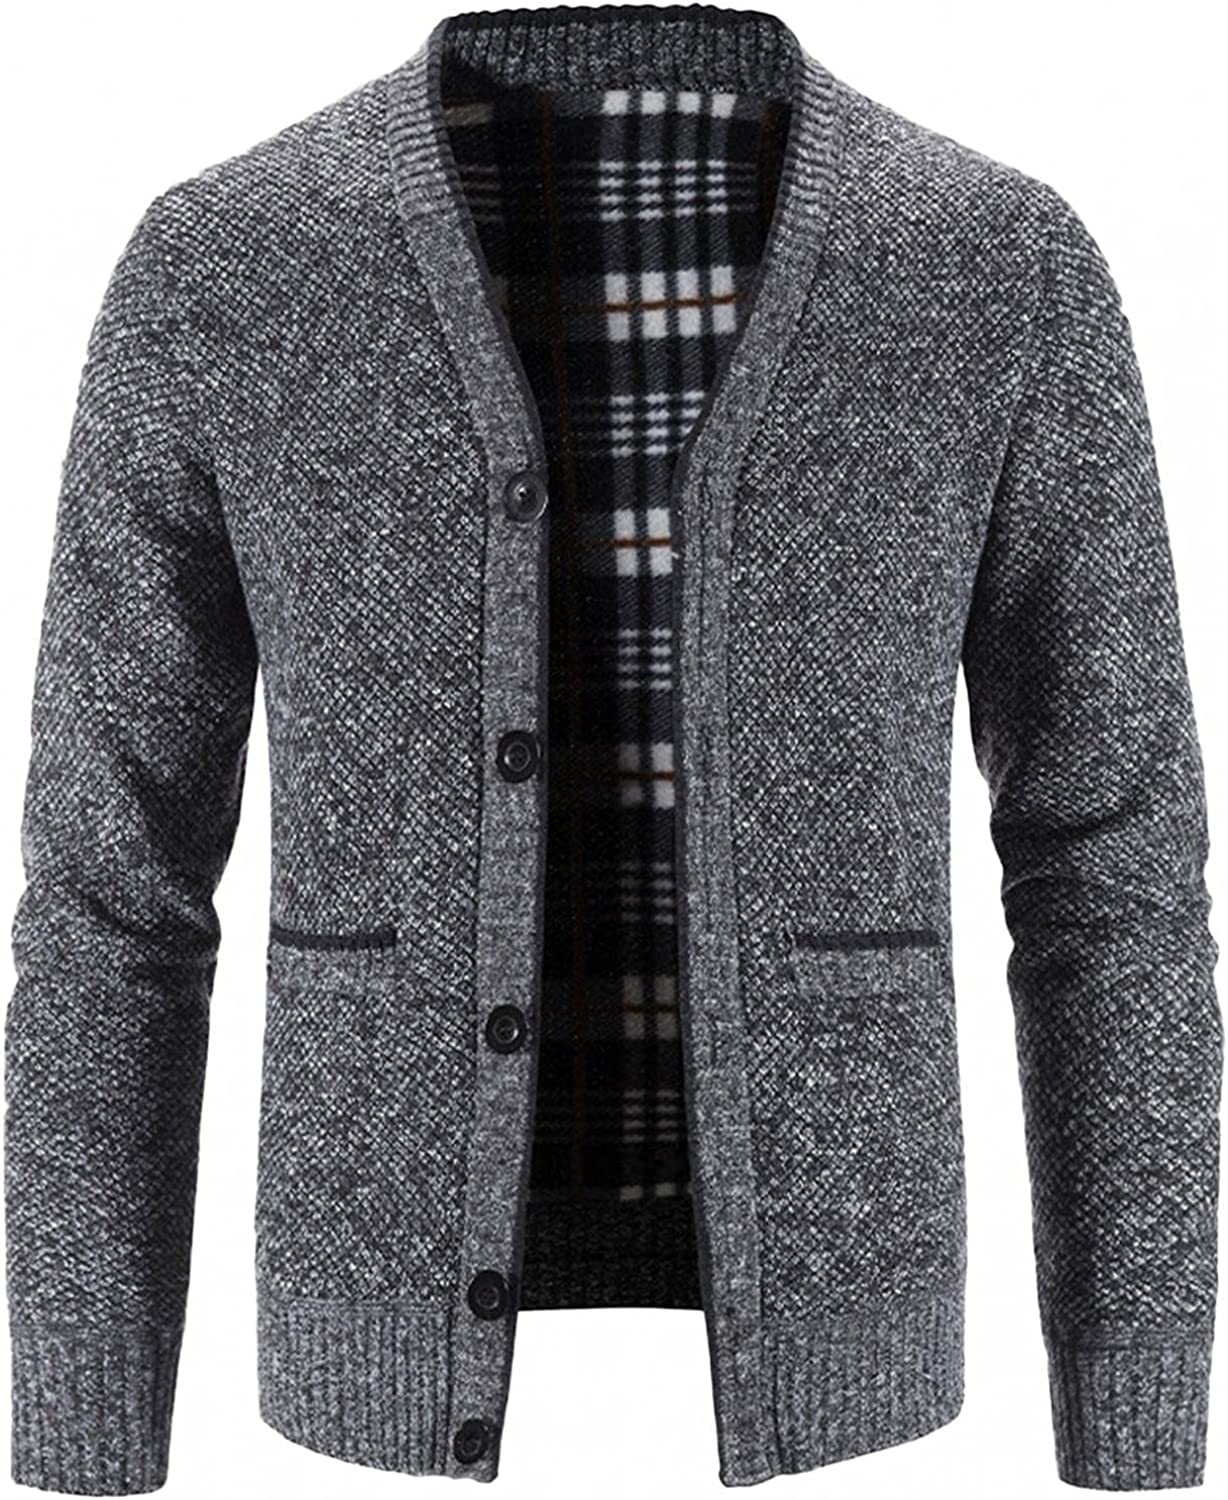 Mens Stand Collar Knitted Cardigan Sweater Zip Up Long Sleeve Thick Warm Coat Stripes Casual Slim Fit Jacket with Pocket